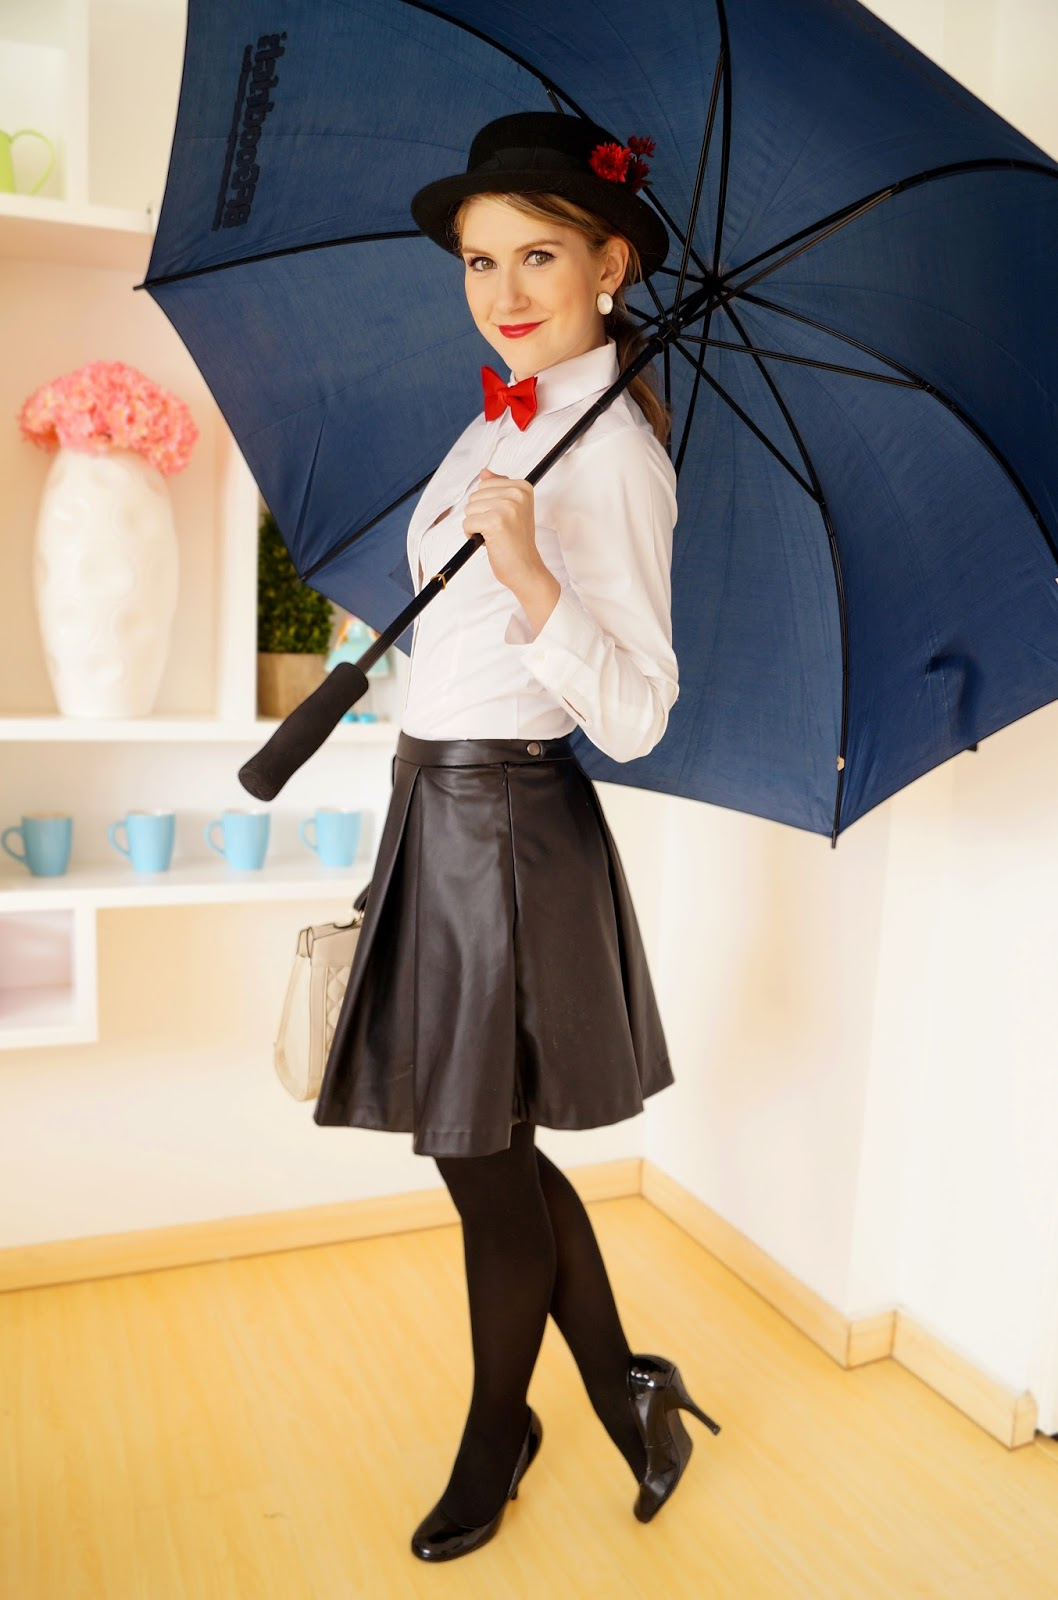 Last Minute Mary Poppins Halloween Costume